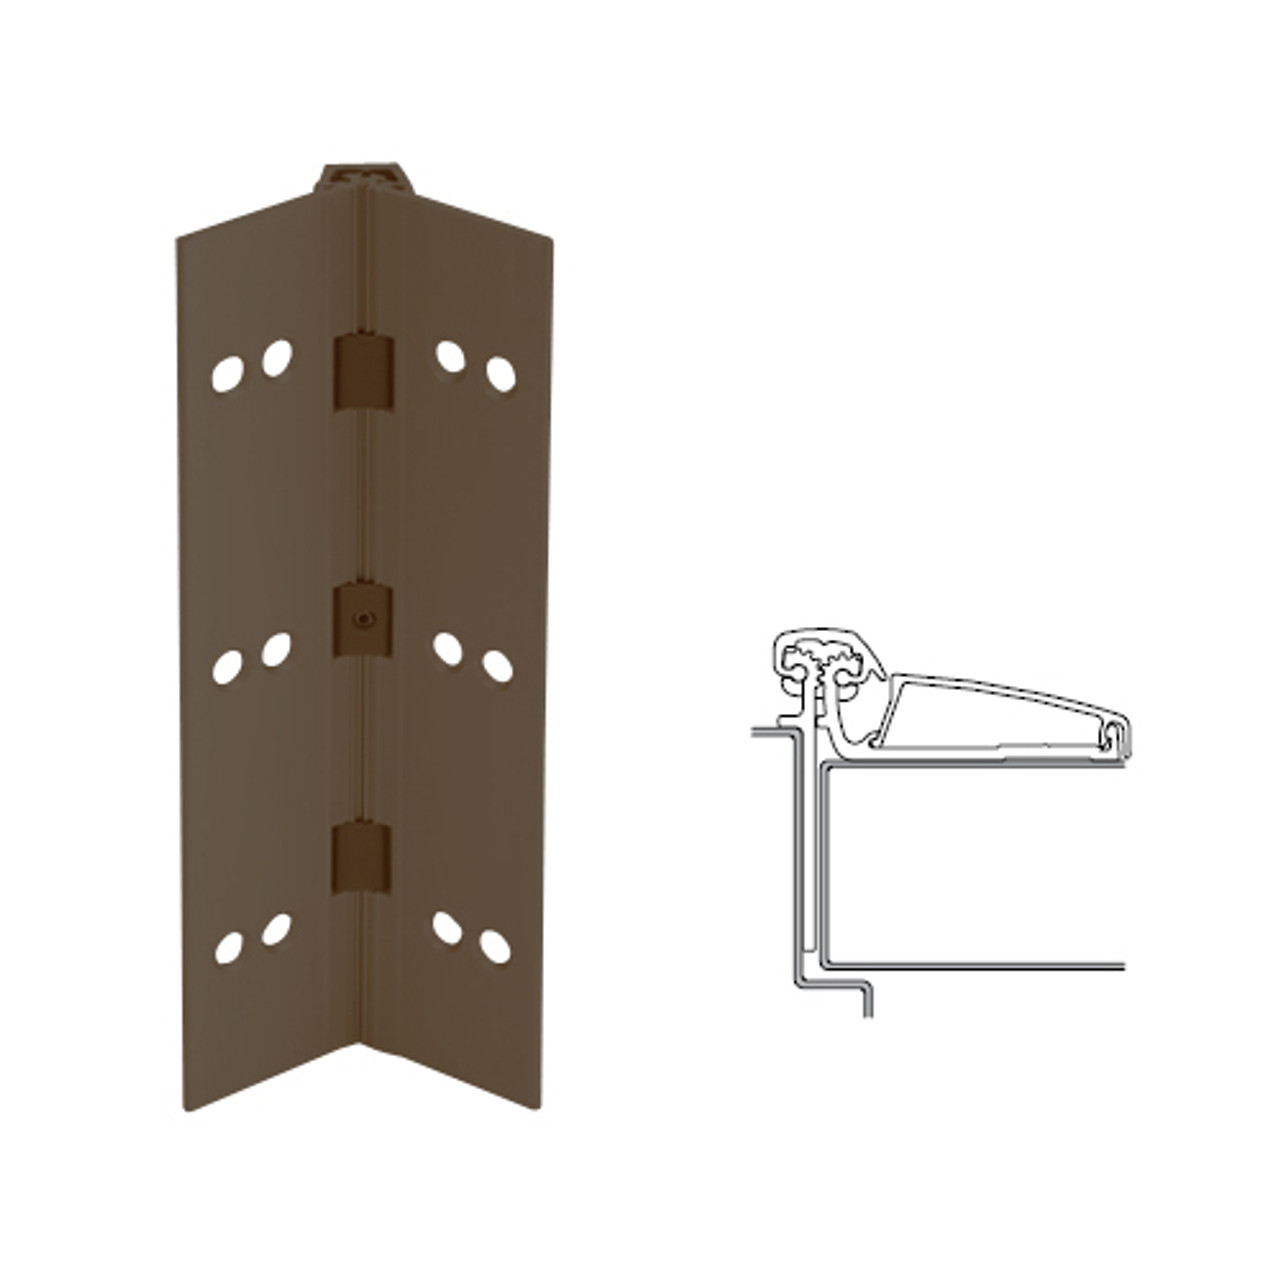 046XY-313AN-85-TEKWD IVES Adjustable Half Surface Continuous Geared Hinges with Wood Screws in Dark Bronze Anodized